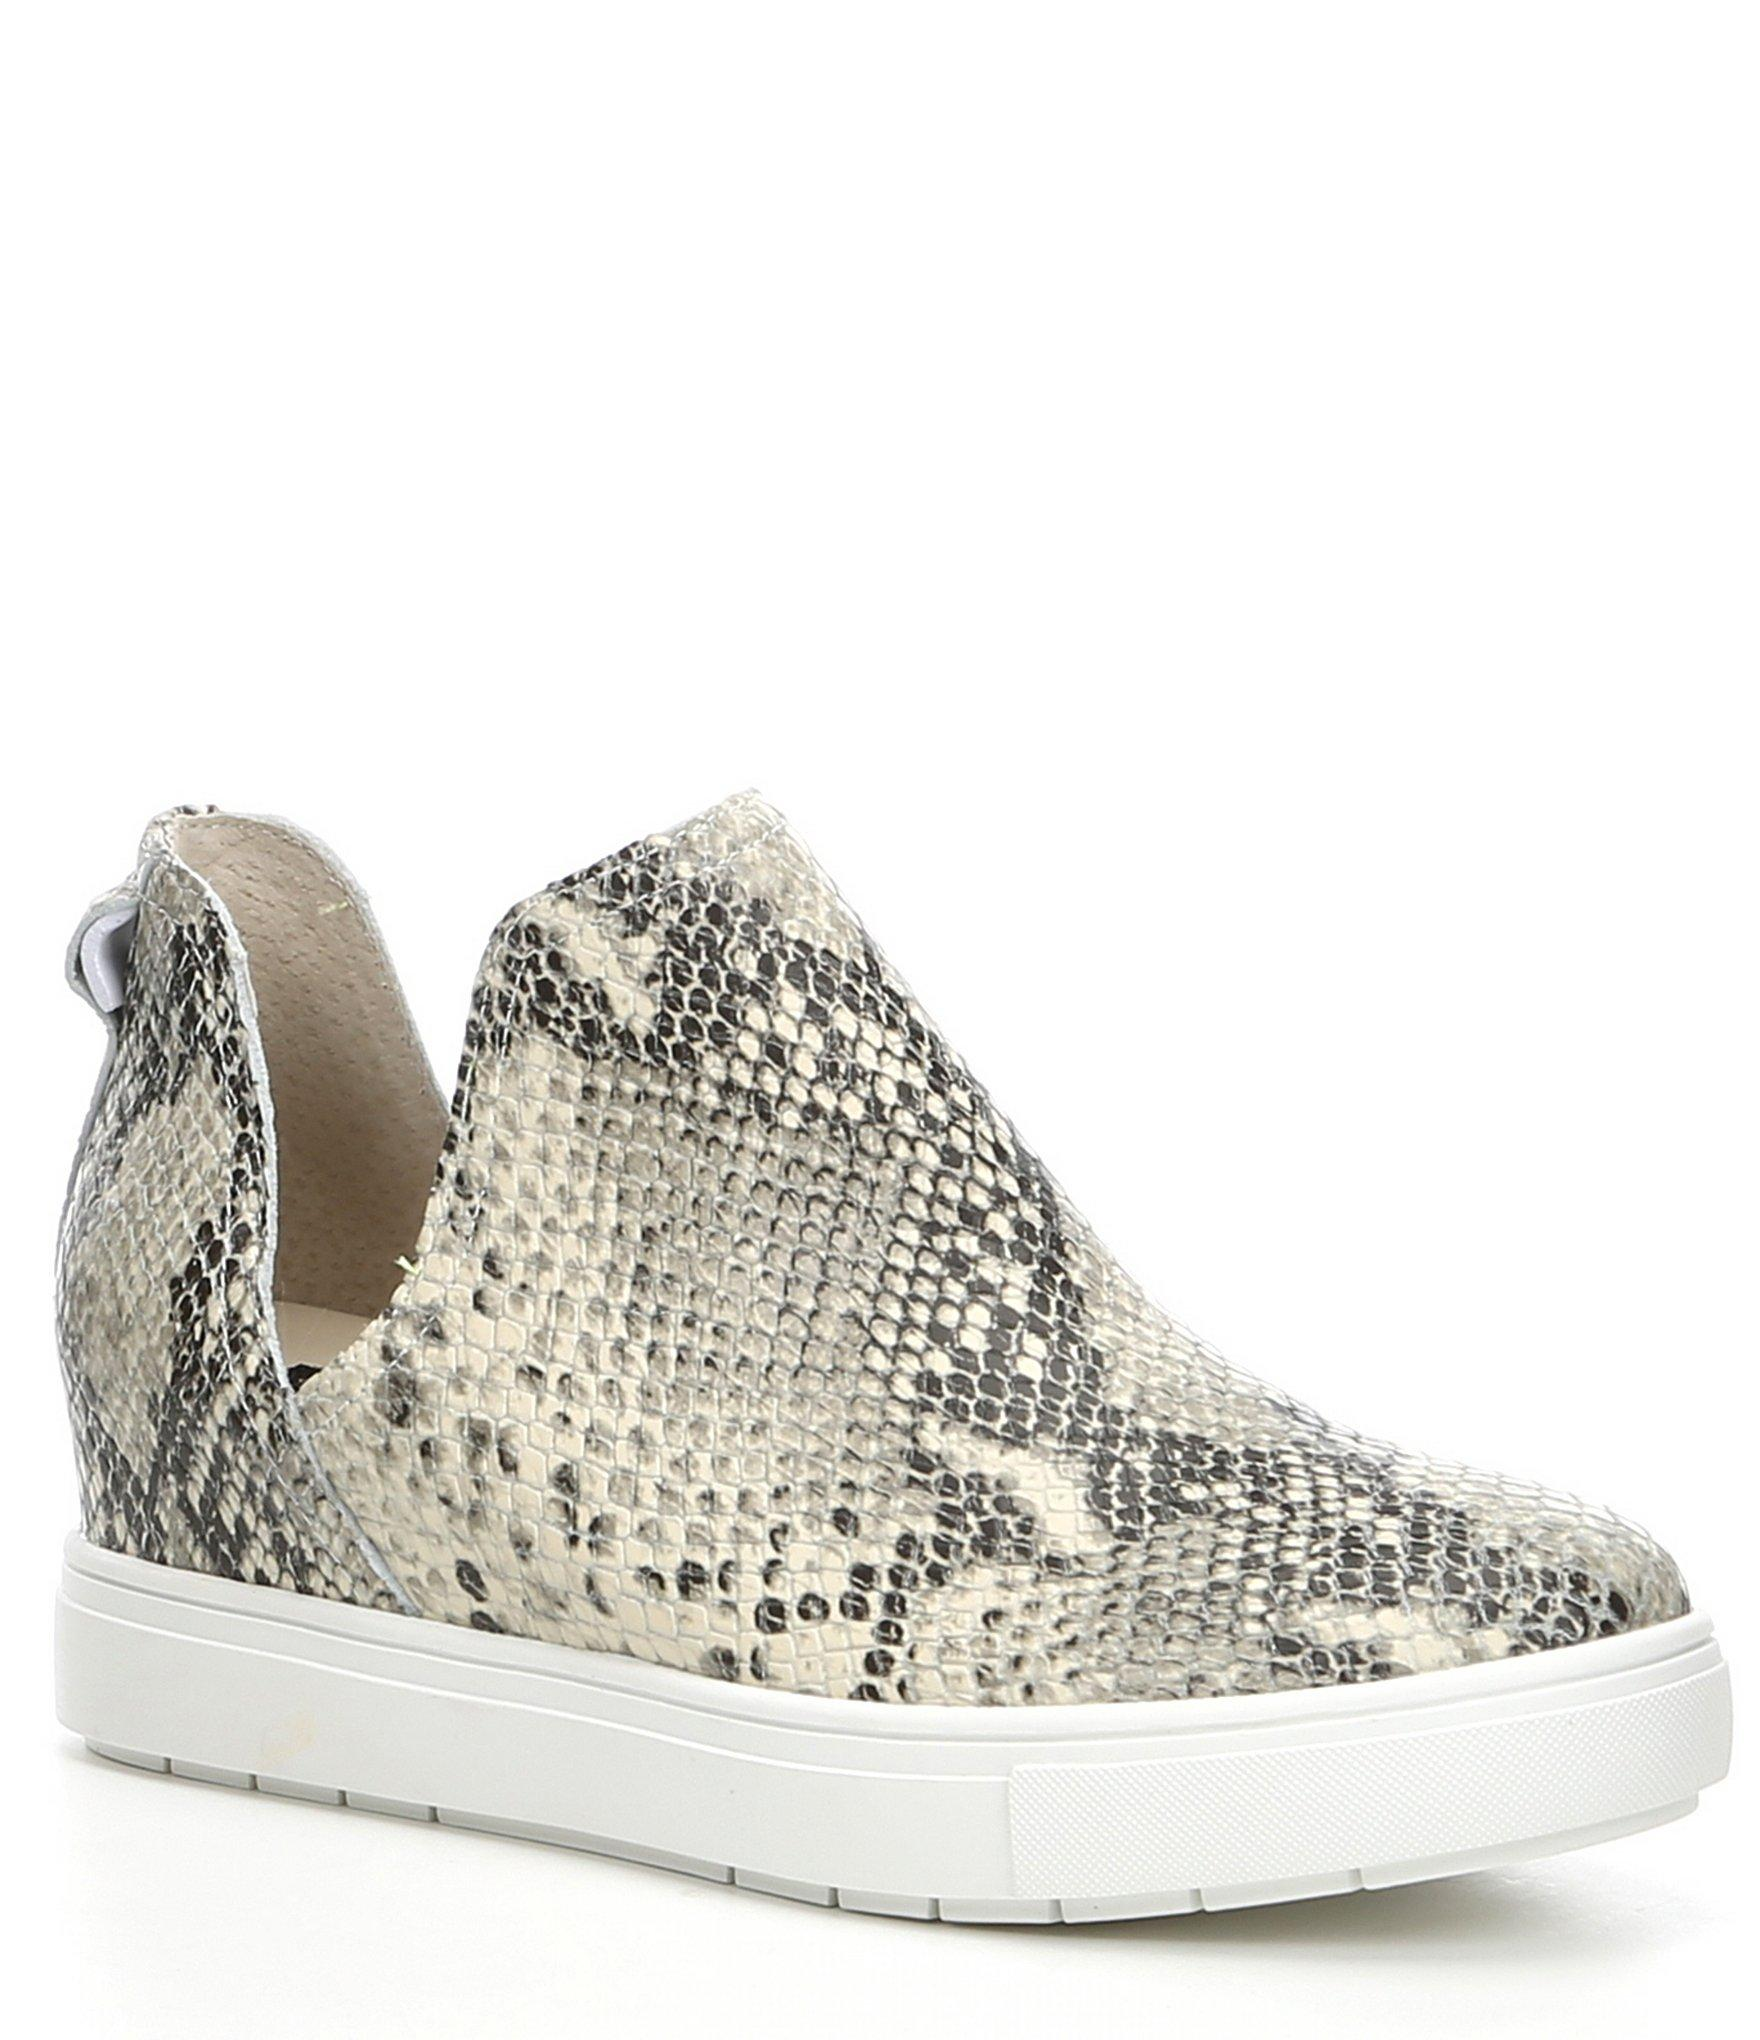 63081cc12 Steve Madden Steven By Canares Snake-print Leather Sneakers in White ...